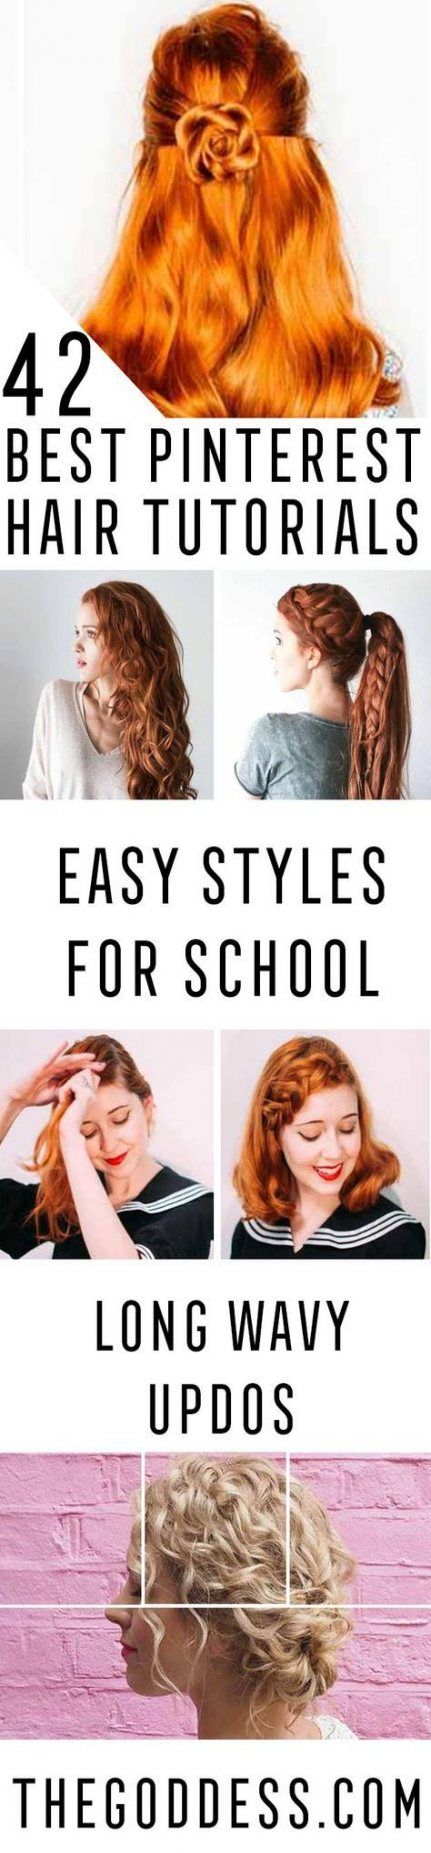 19+ ideas hairstyles simple straight highlights for 2019